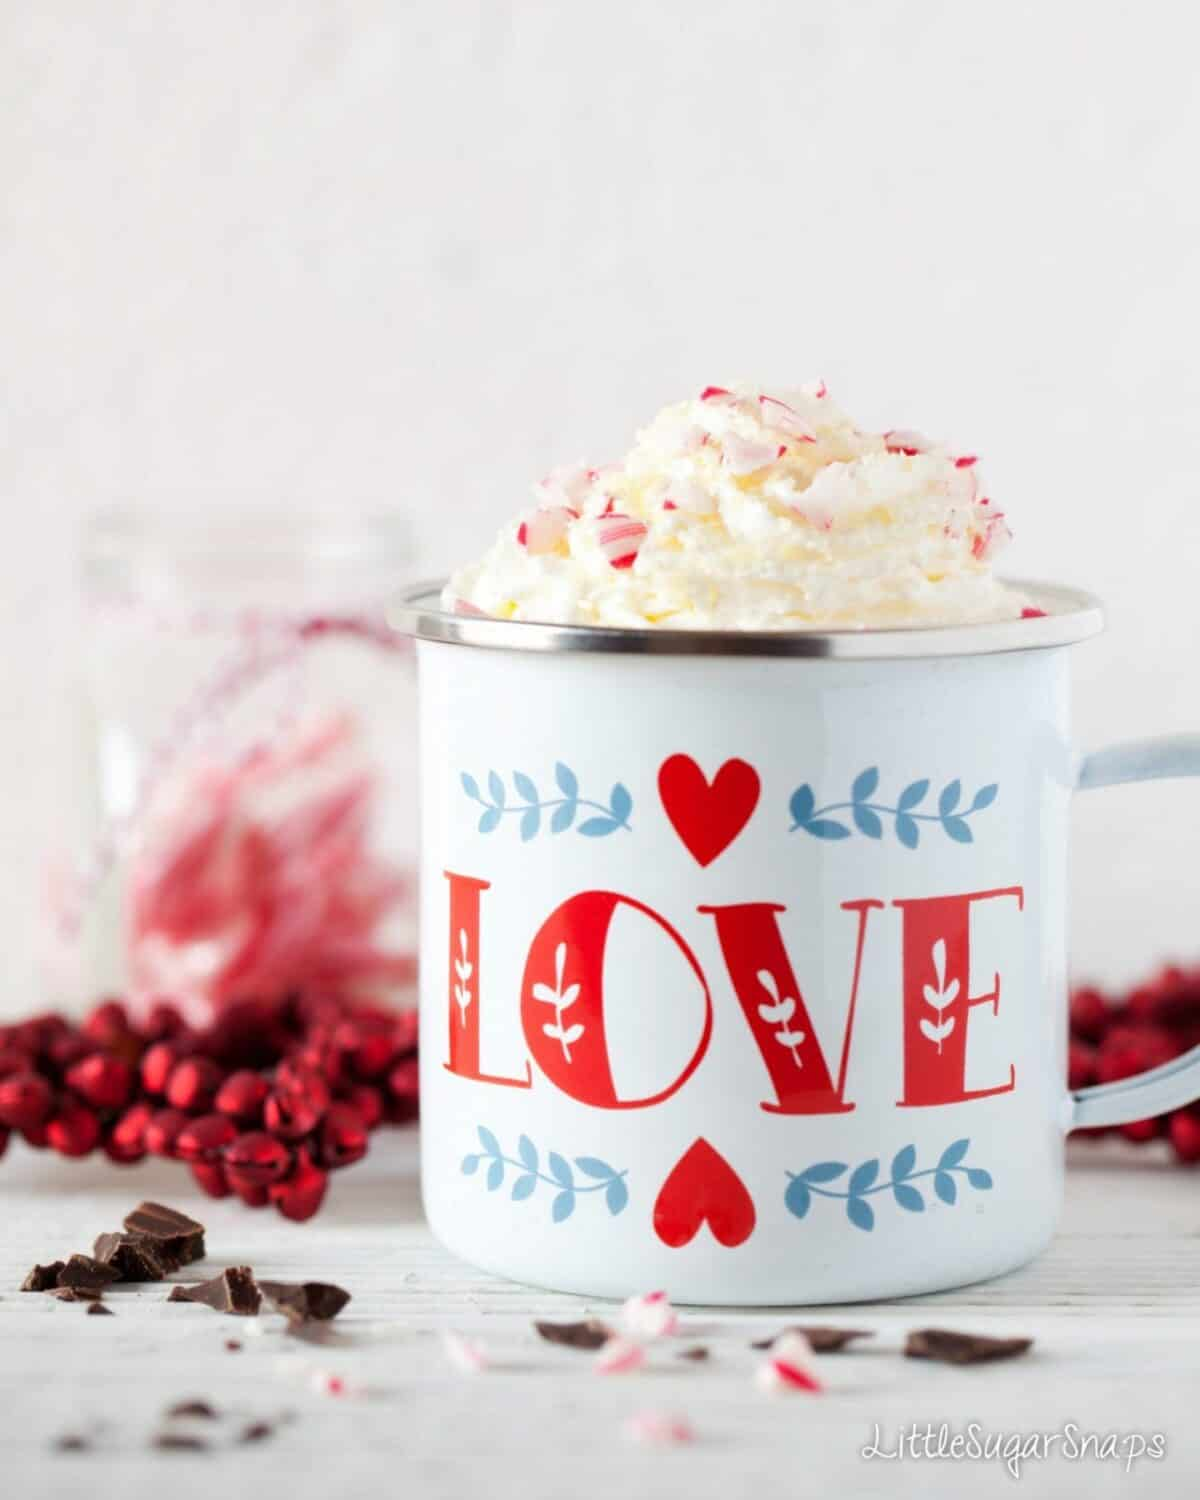 An enamel mug of hot chocolate with cream and candy cane pieces